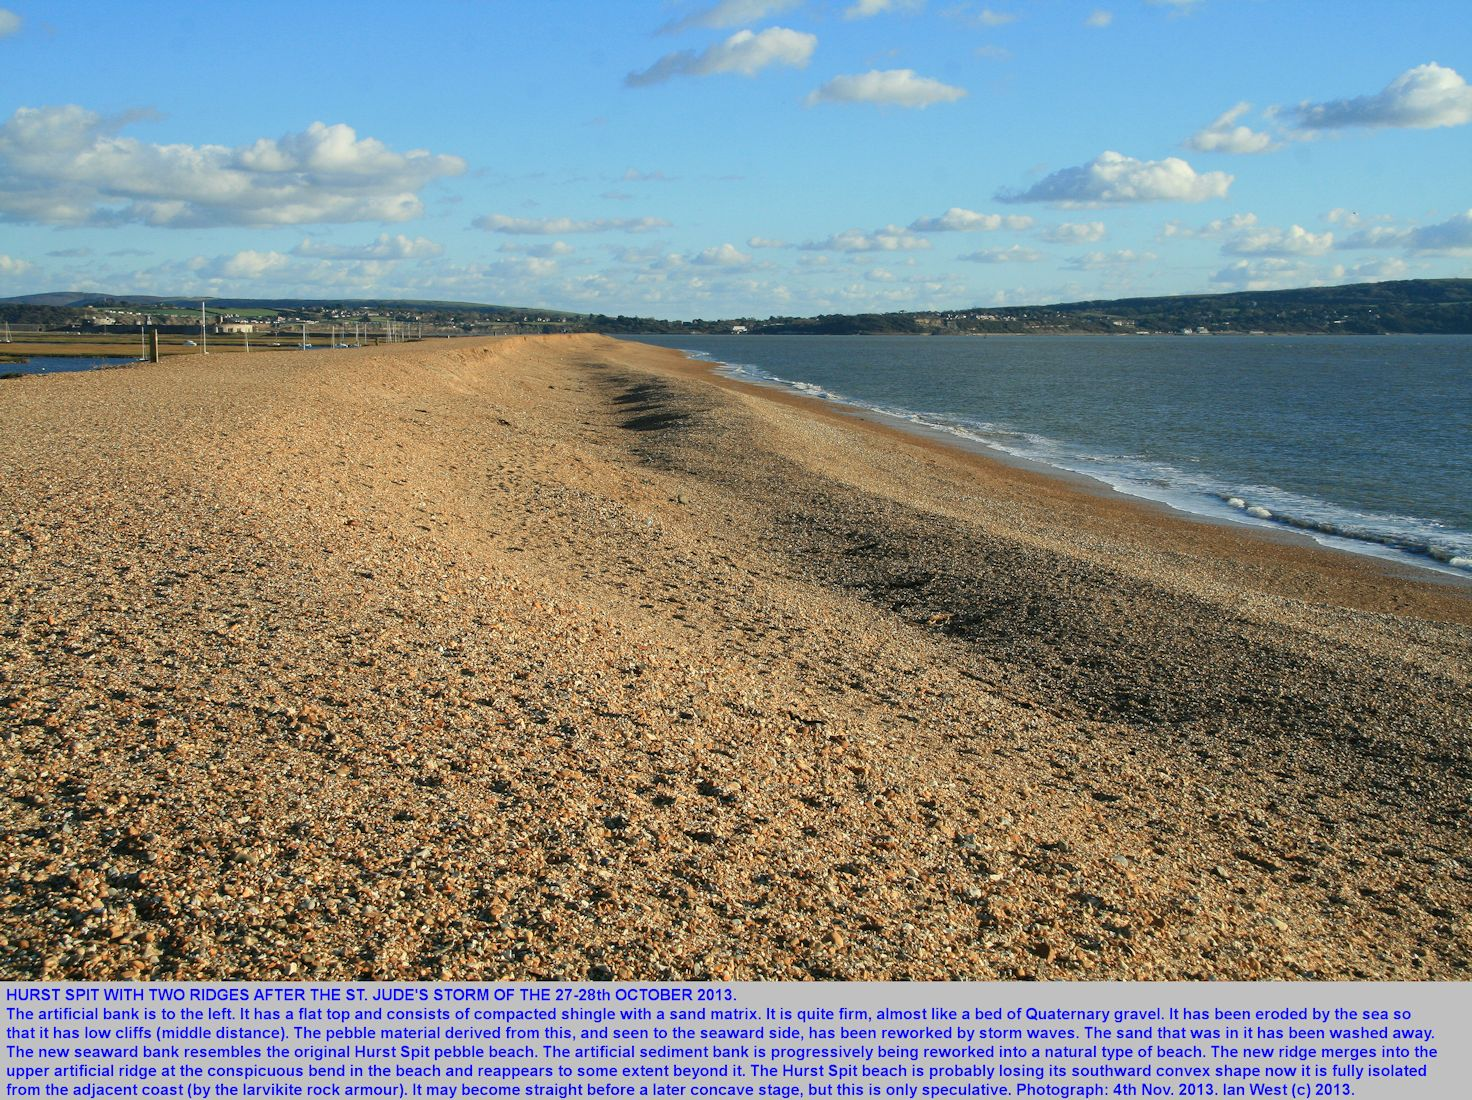 Development of a double shingle bank at Hurst Spit, Hampshire, after the St. Jude's Storm of late October 2013